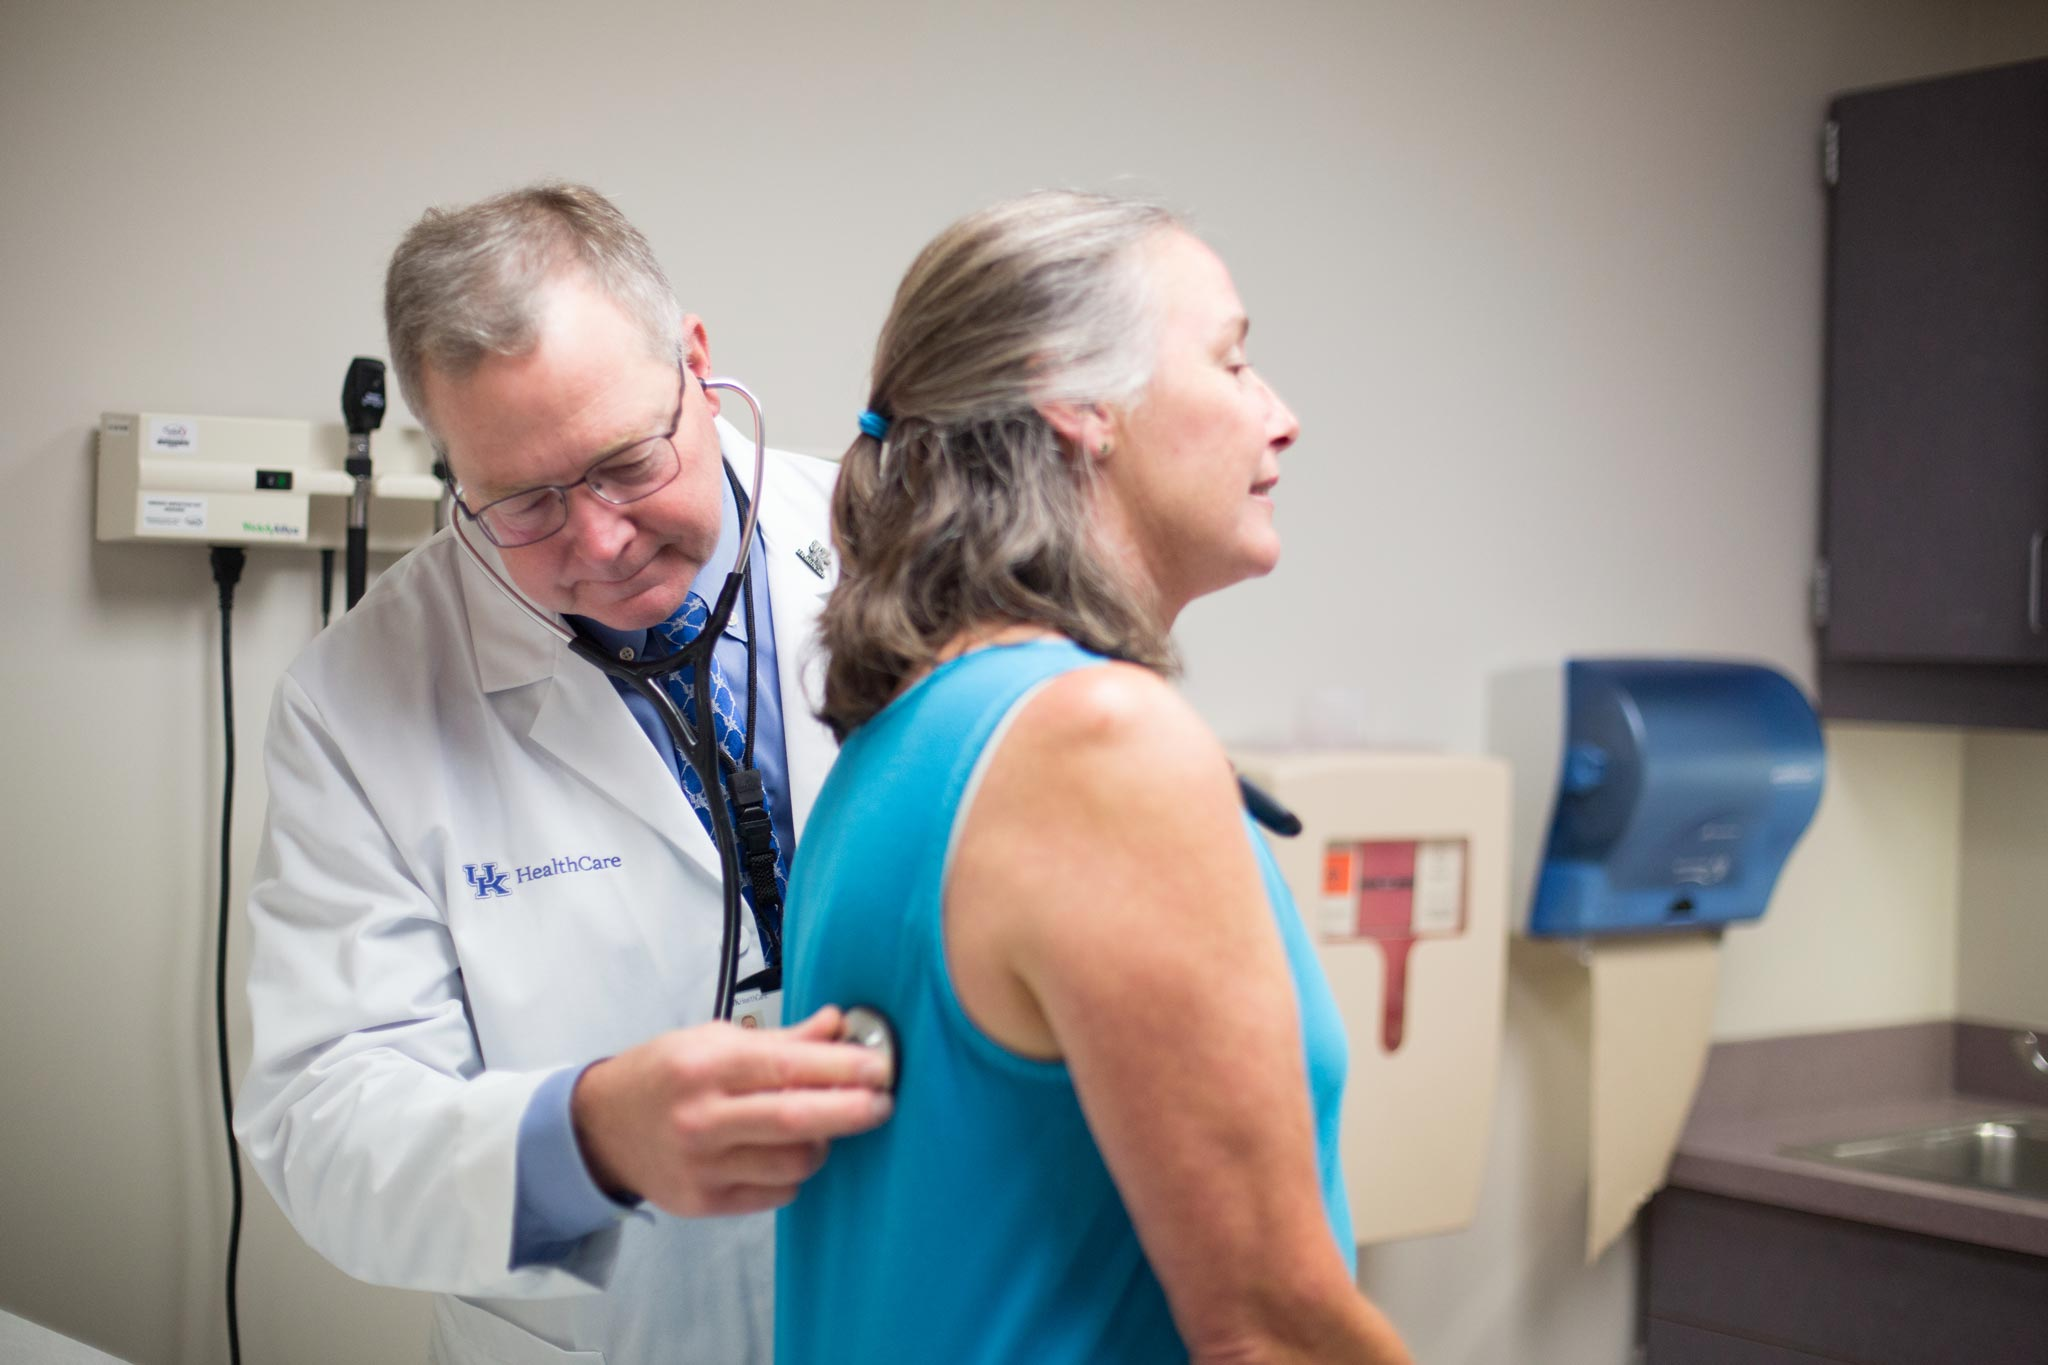 Dr. Mullett listens to a patient's heartbeat with his stethoscope.